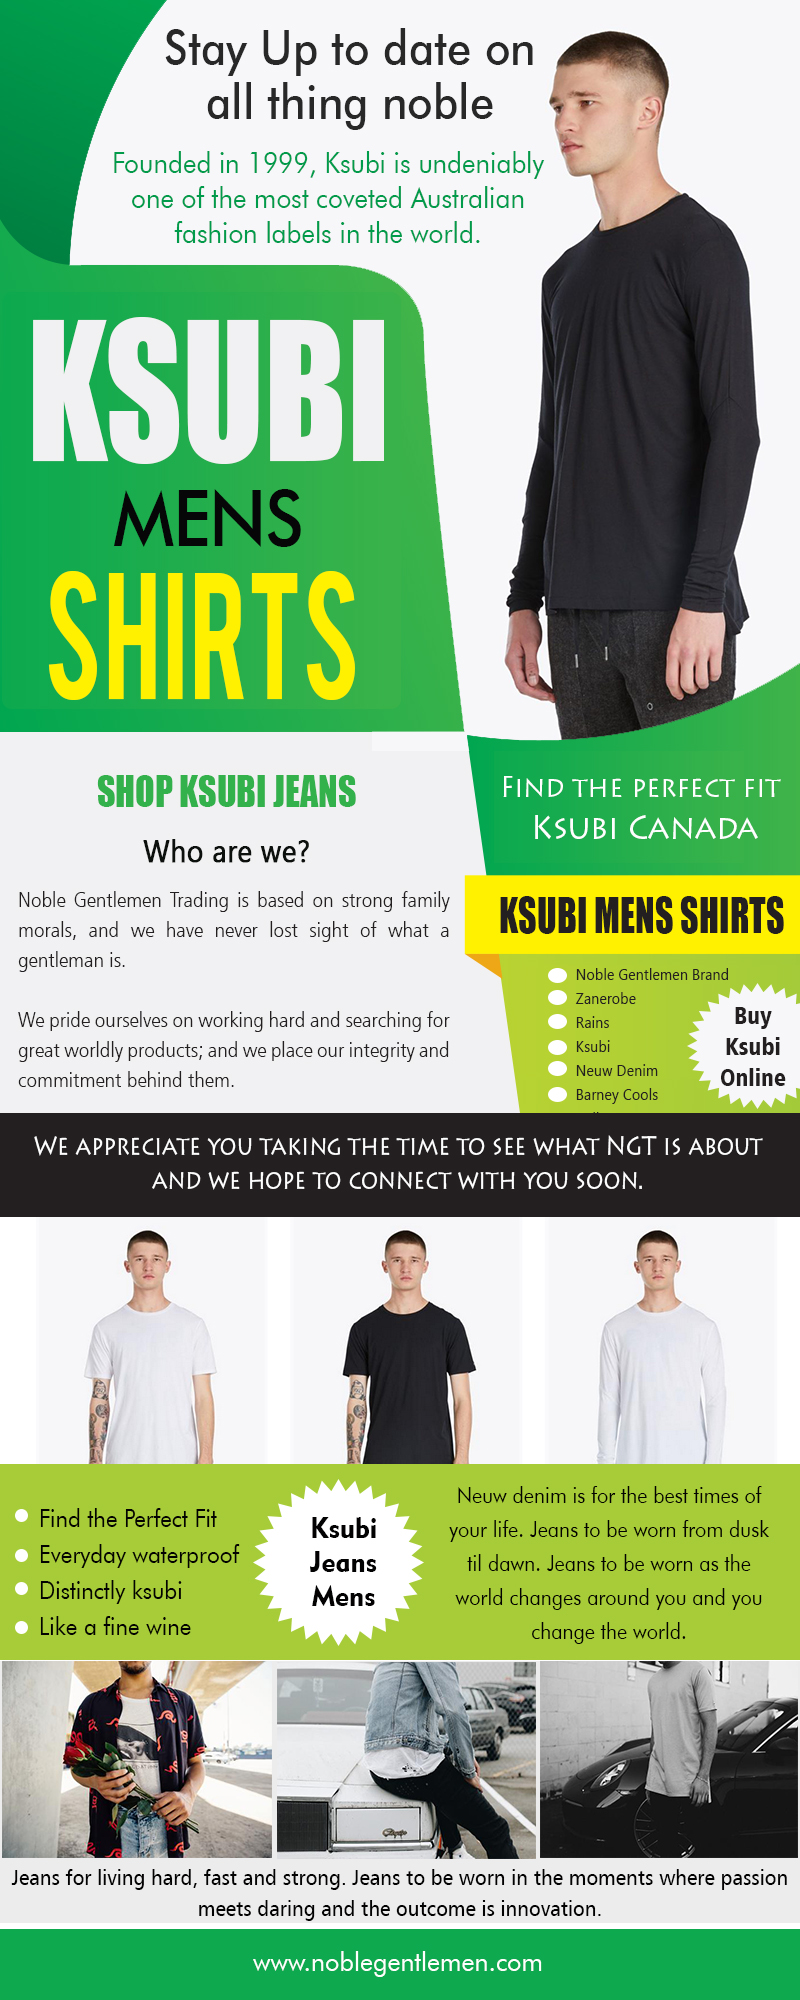 Ksubi Mens Shirts